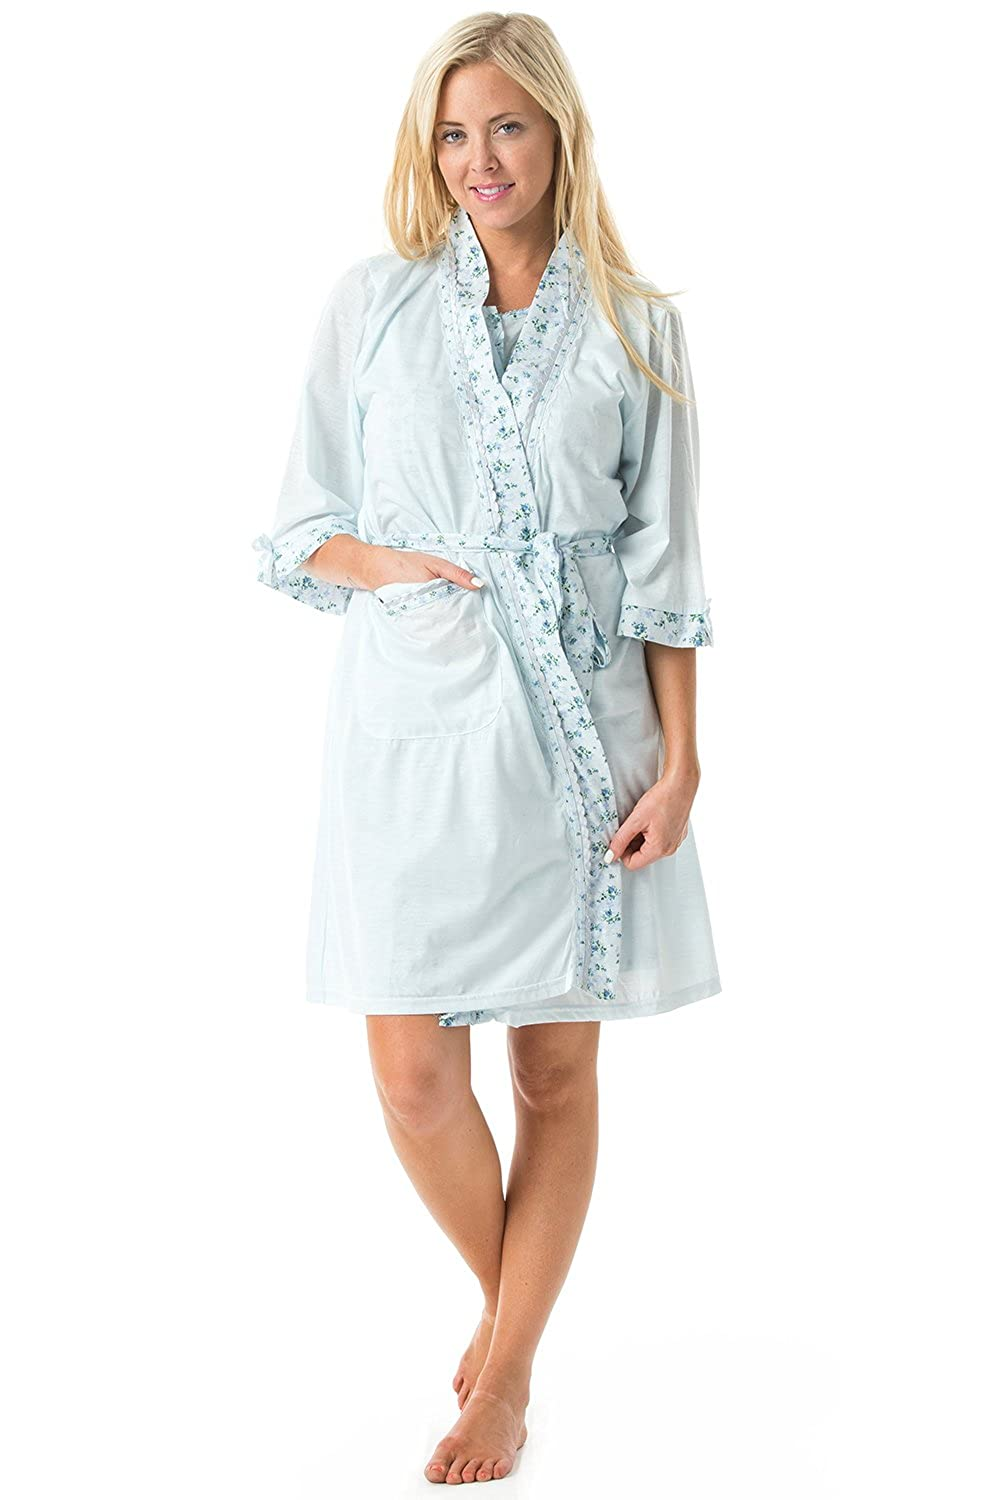 ff79986e749c Casual Nights Women s Sleepwear 2 Piece Nightgown and Robe Set at Amazon  Women s Clothing store